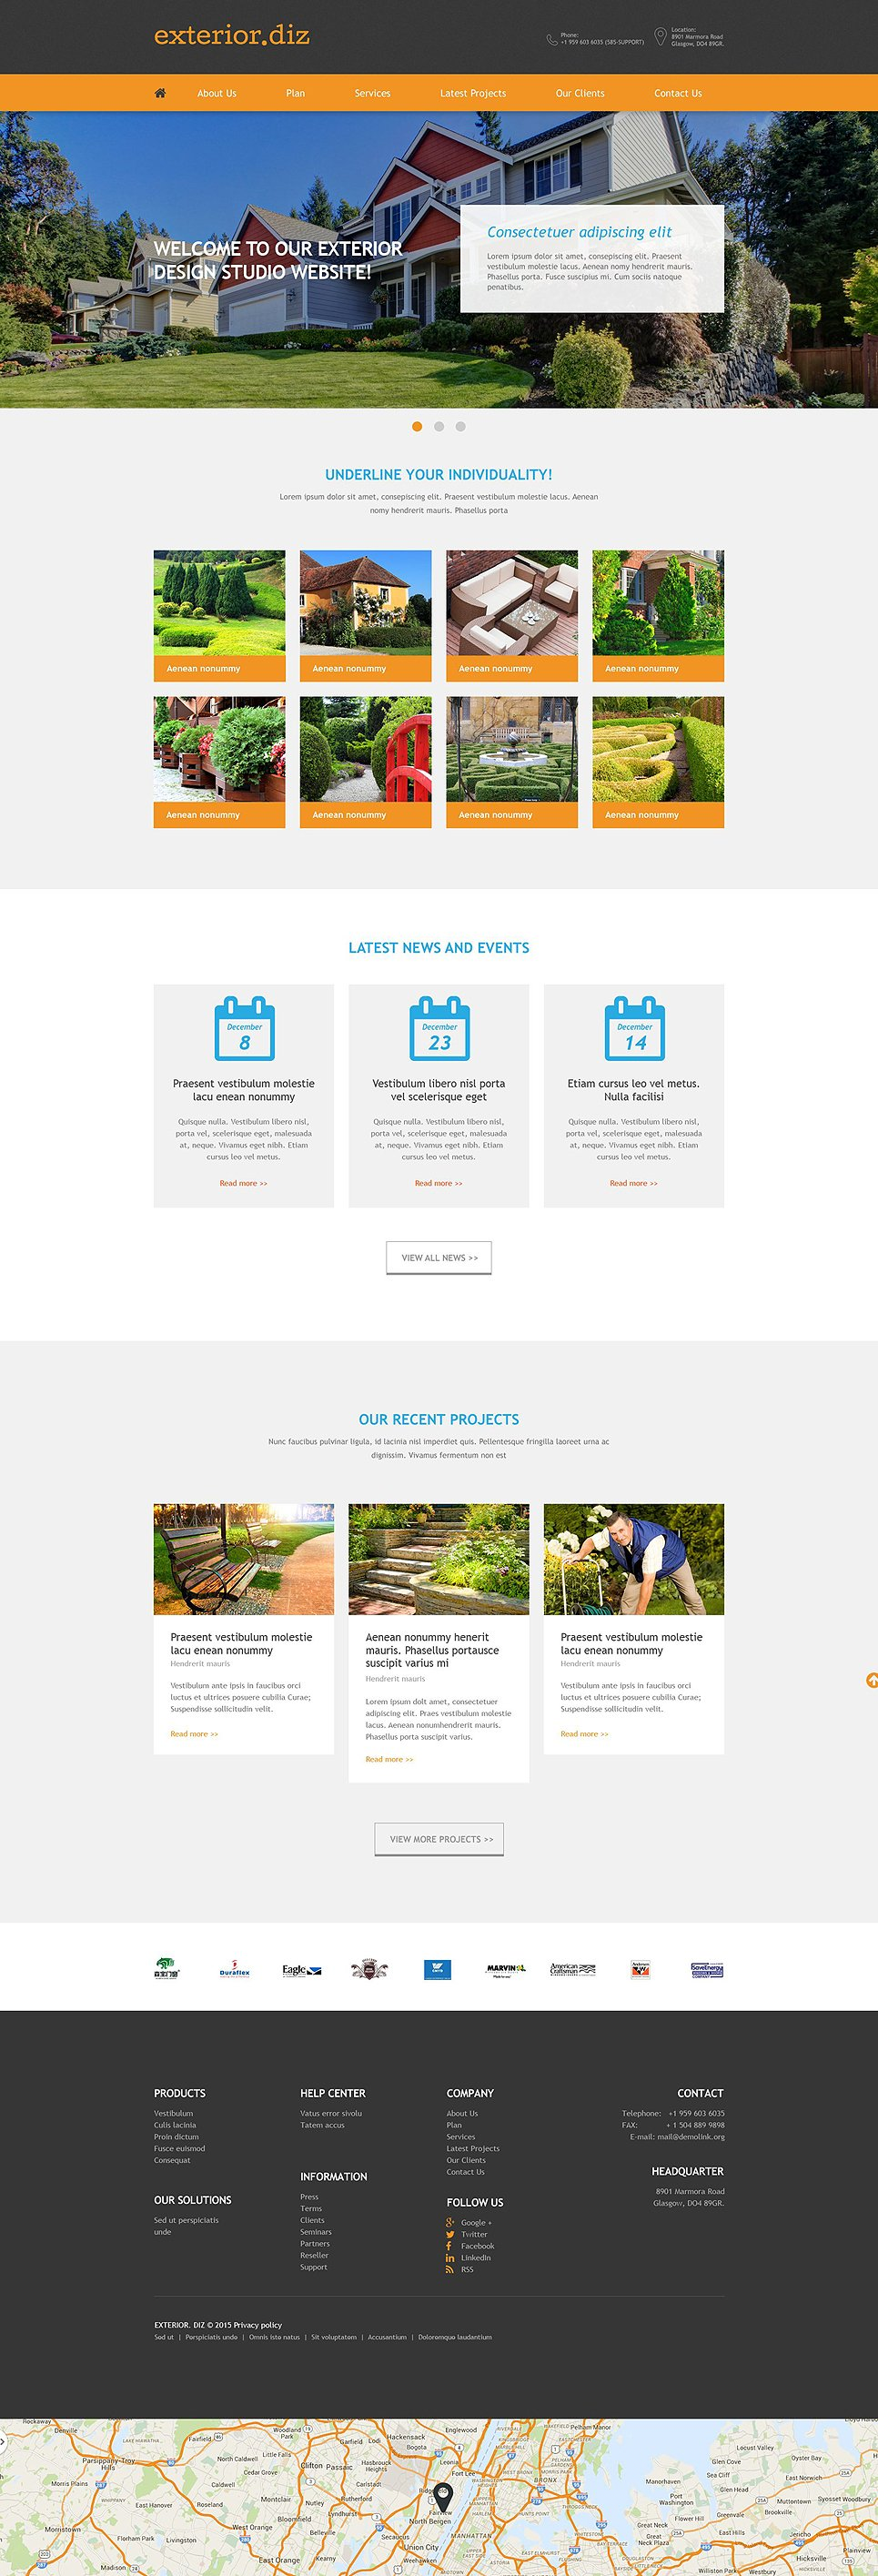 Template 52869 ensegna themes for Online exterior design services